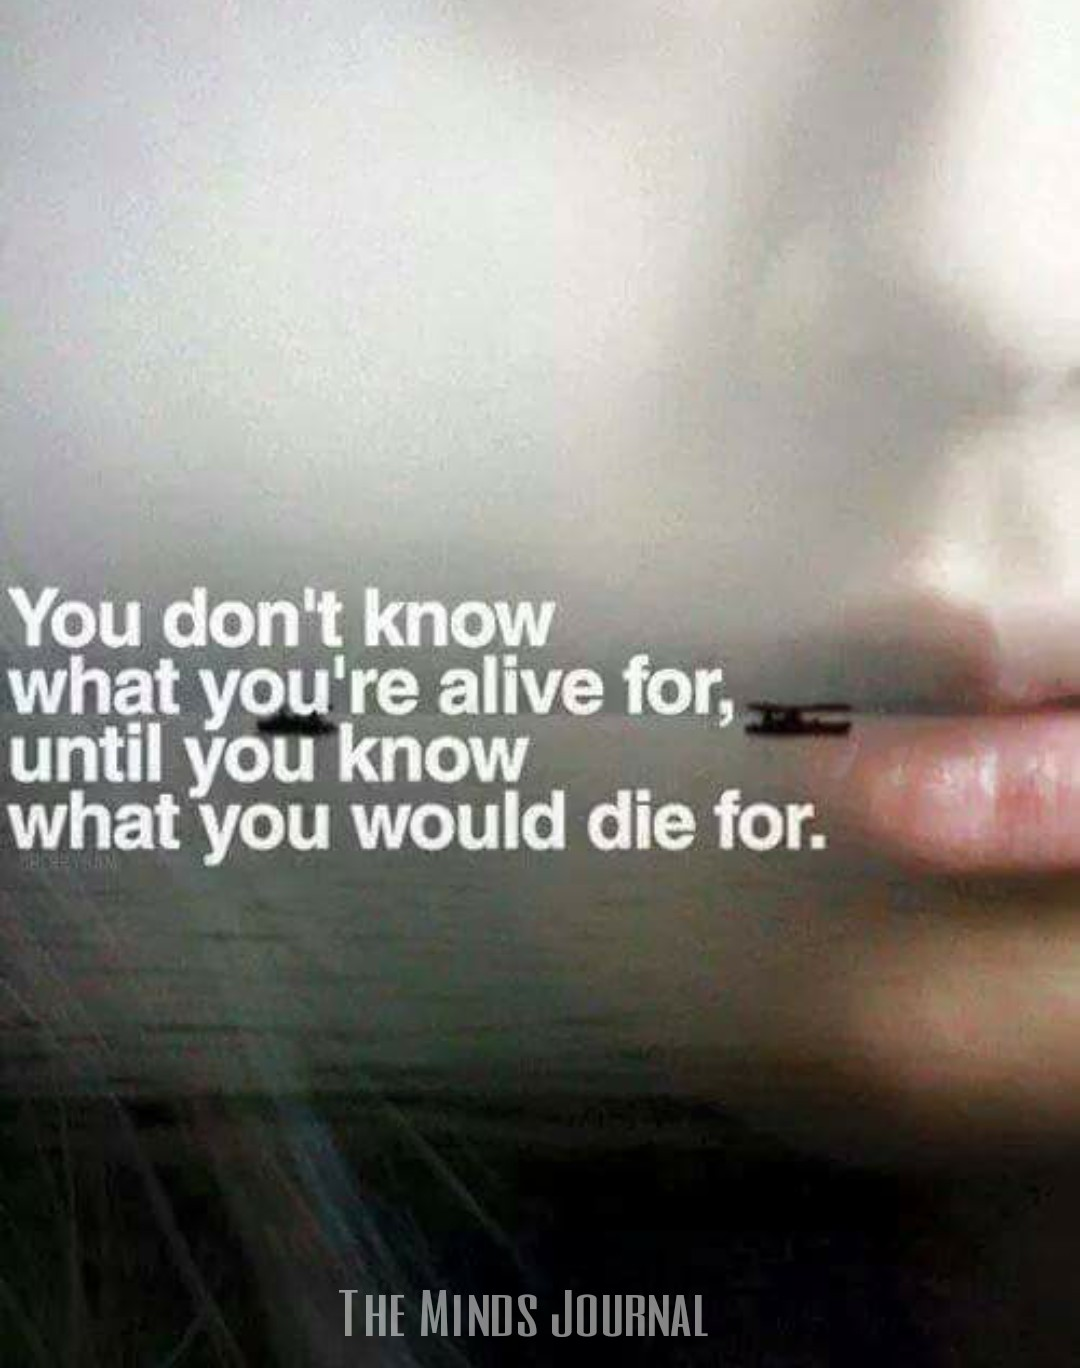 What would you die for ?